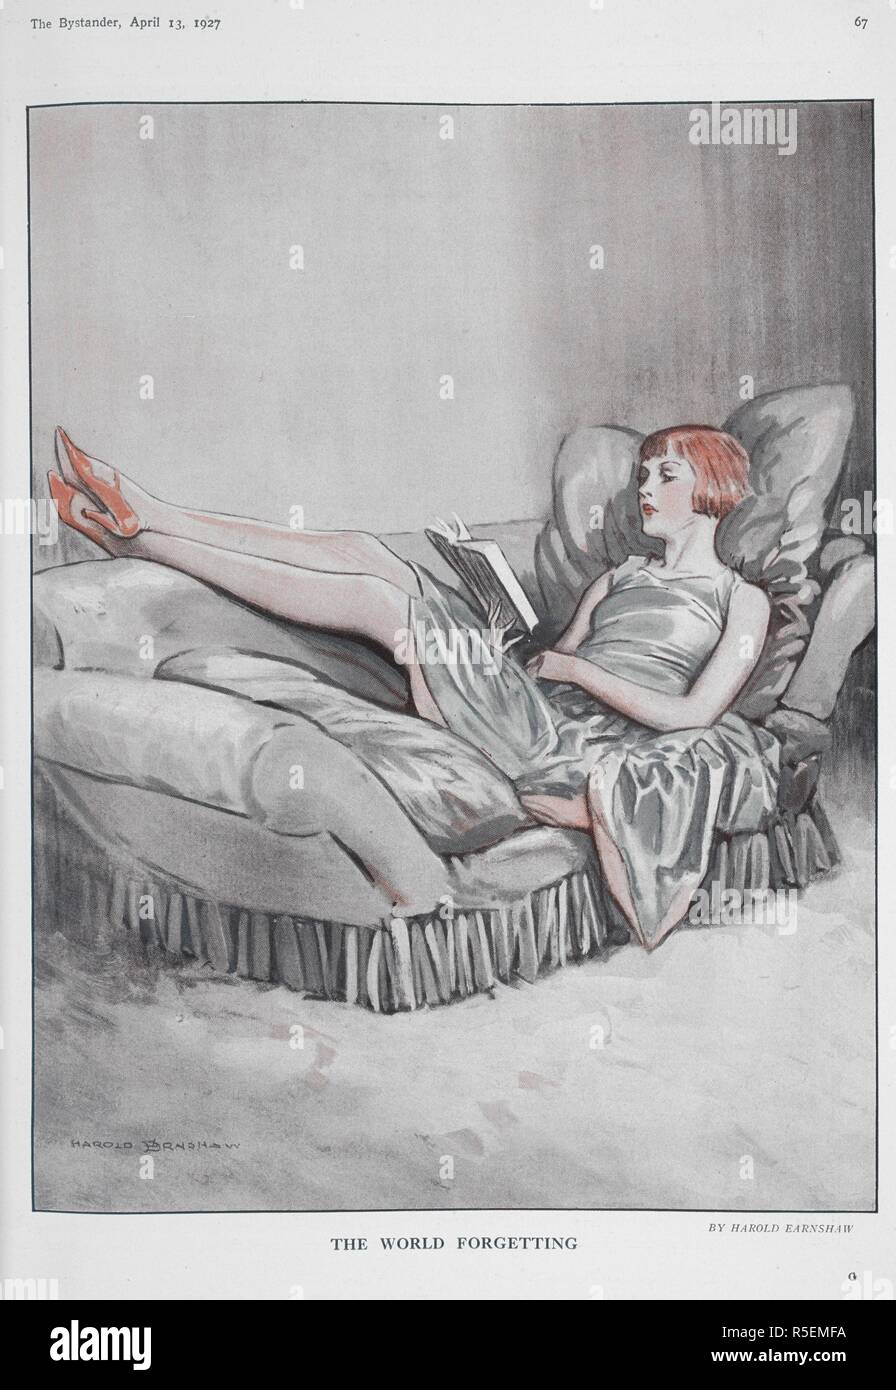 The world forgetting'. A woman lying down on a sofa reading a book. The bystander. London : The Bystander, 1903-1940. Source: Z.C.9.d.560, 13 April 1927 page 67. Author: Earnshaw, Harold. - Stock Image